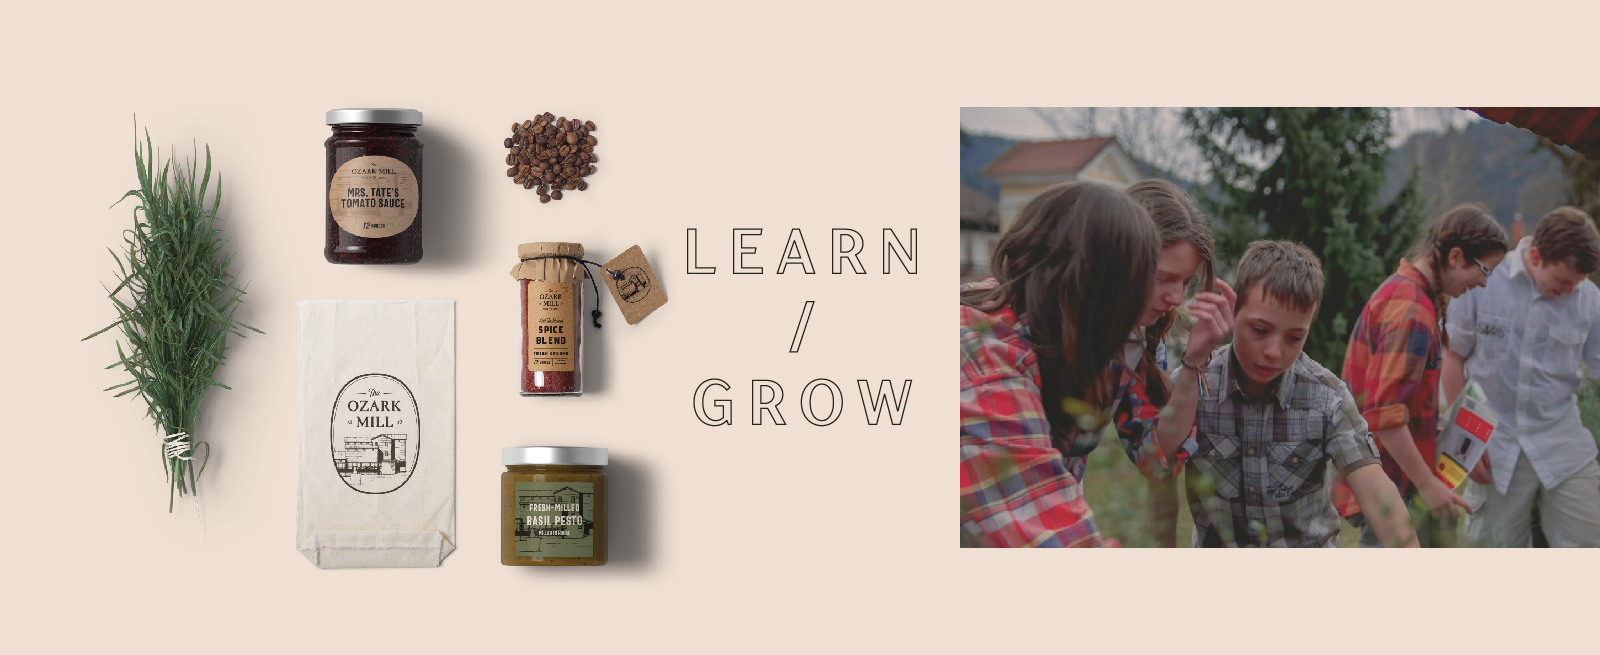 finley-farm-learn-grow